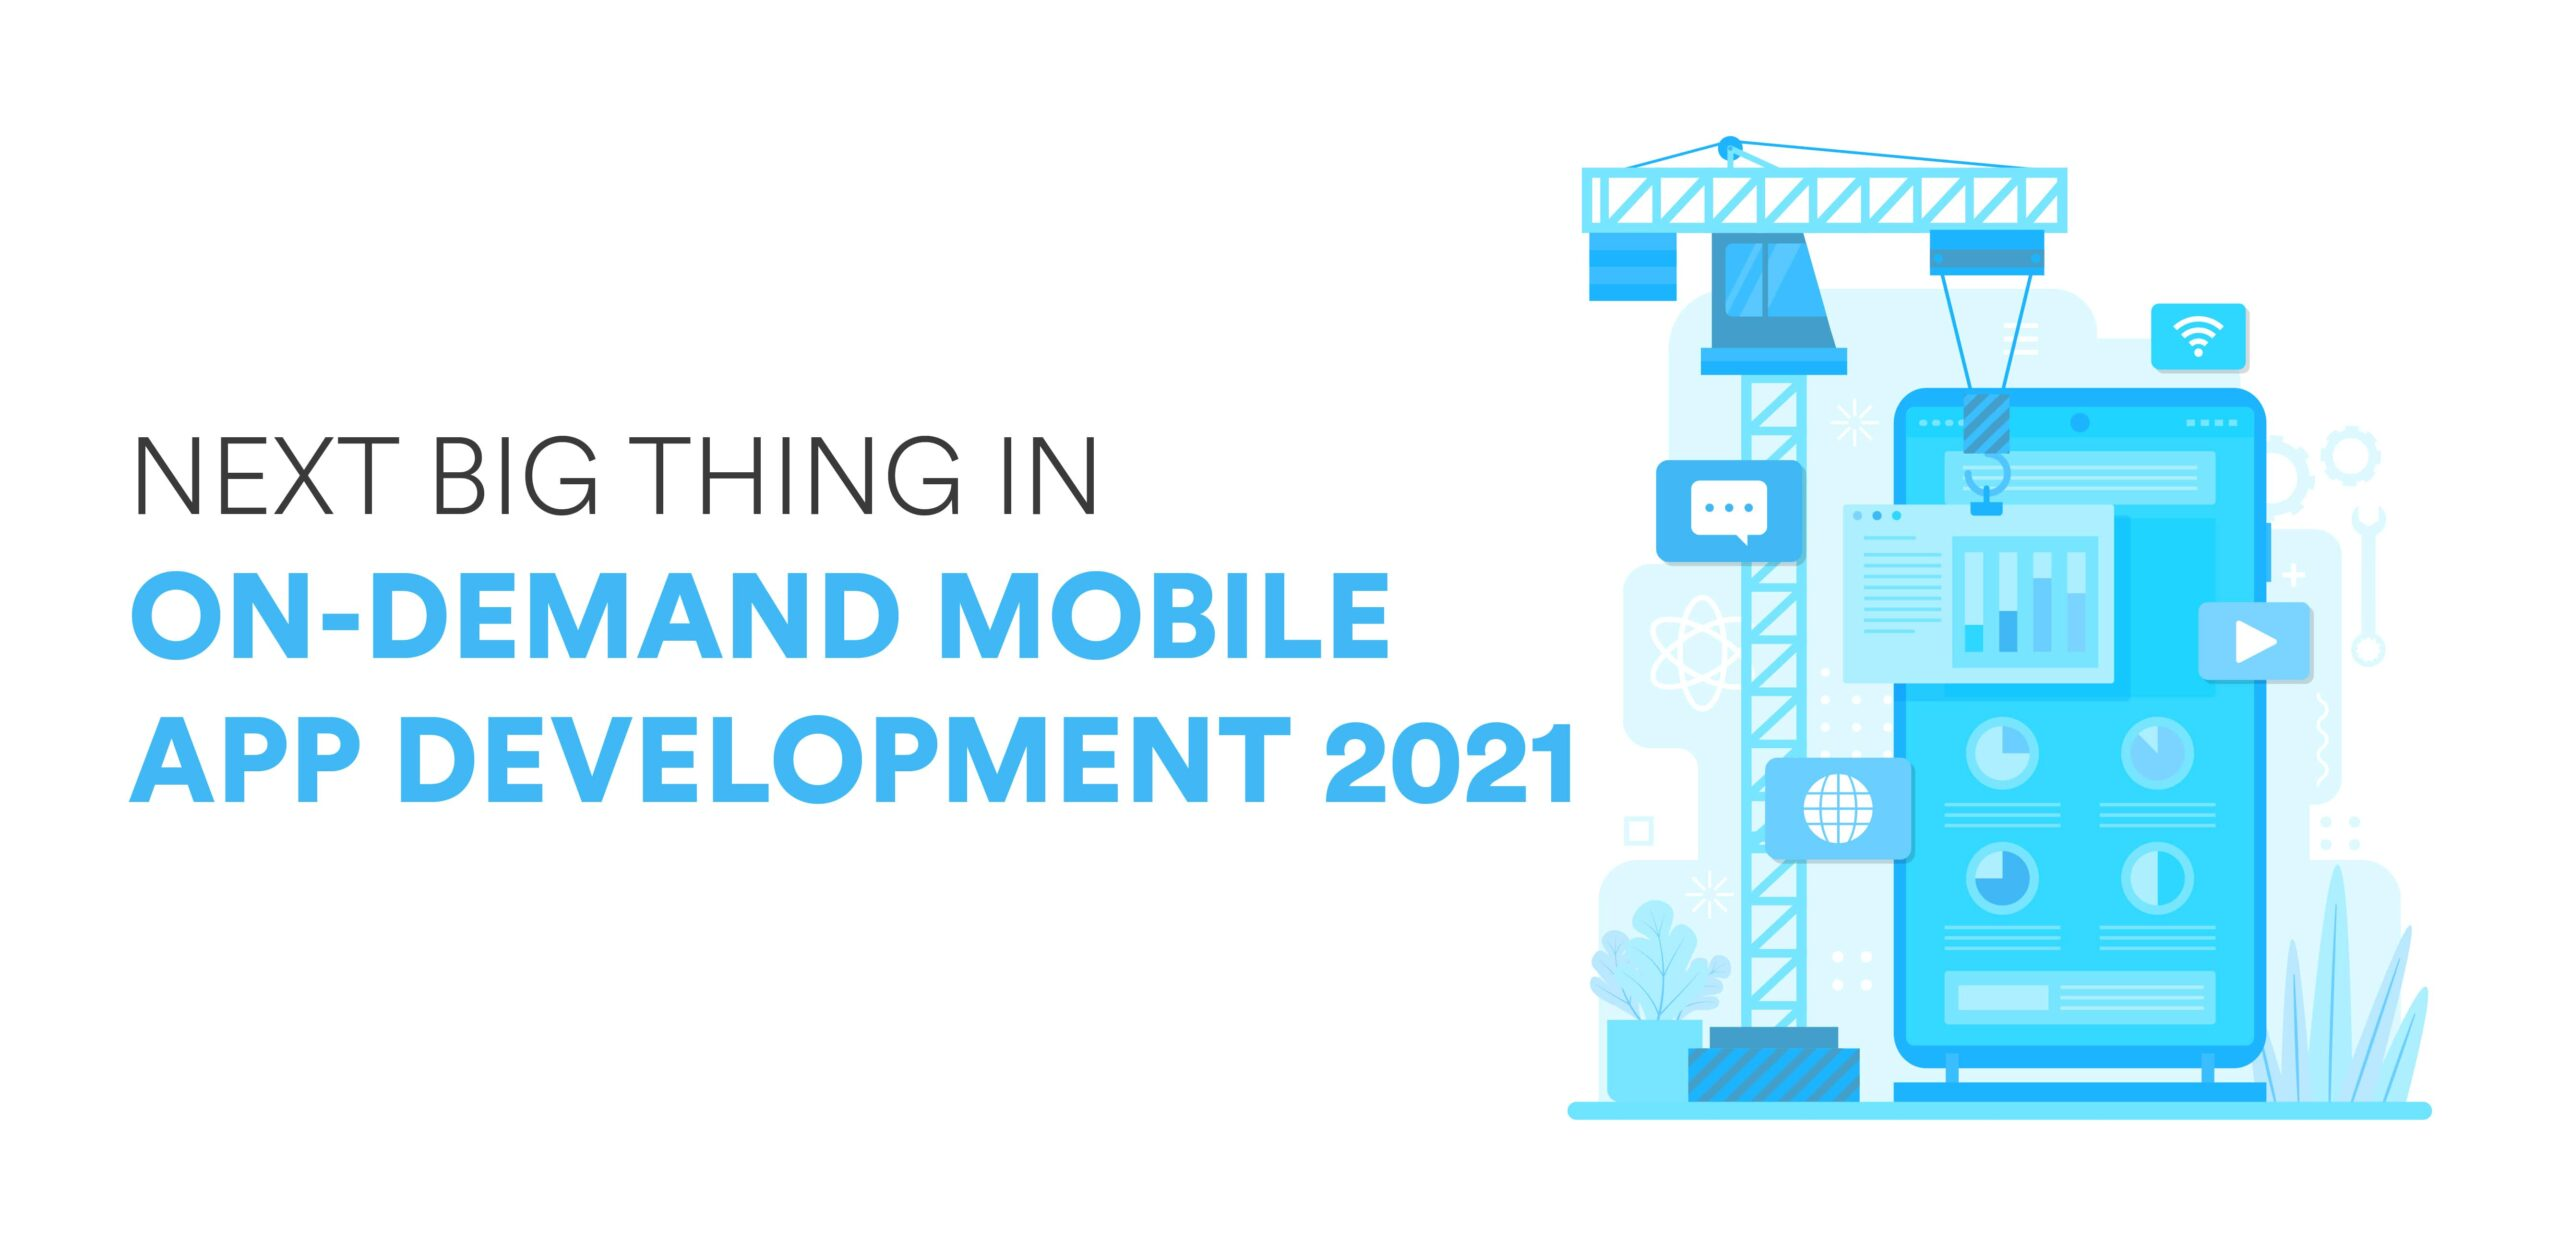 NEXT BIG THING IN ON-DEMAND MOBILE APP DEVELOPMENT 2021 - Domaincer Blog